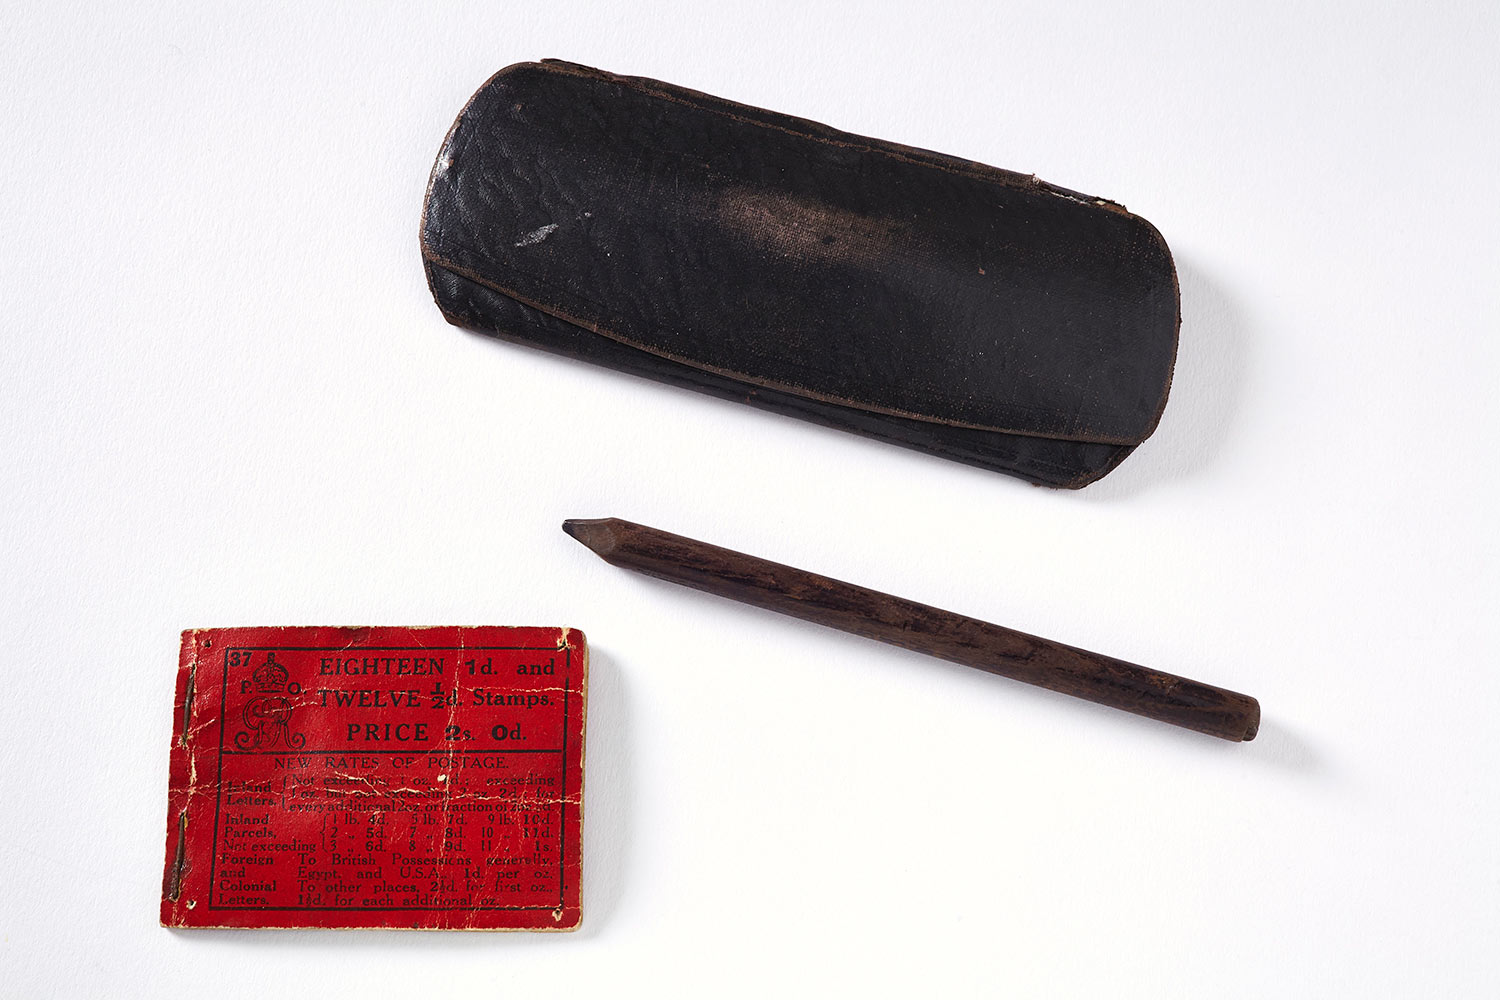 Contents of Tom Clarke's Pocket, a pencil, a book of stamps and a glasses case